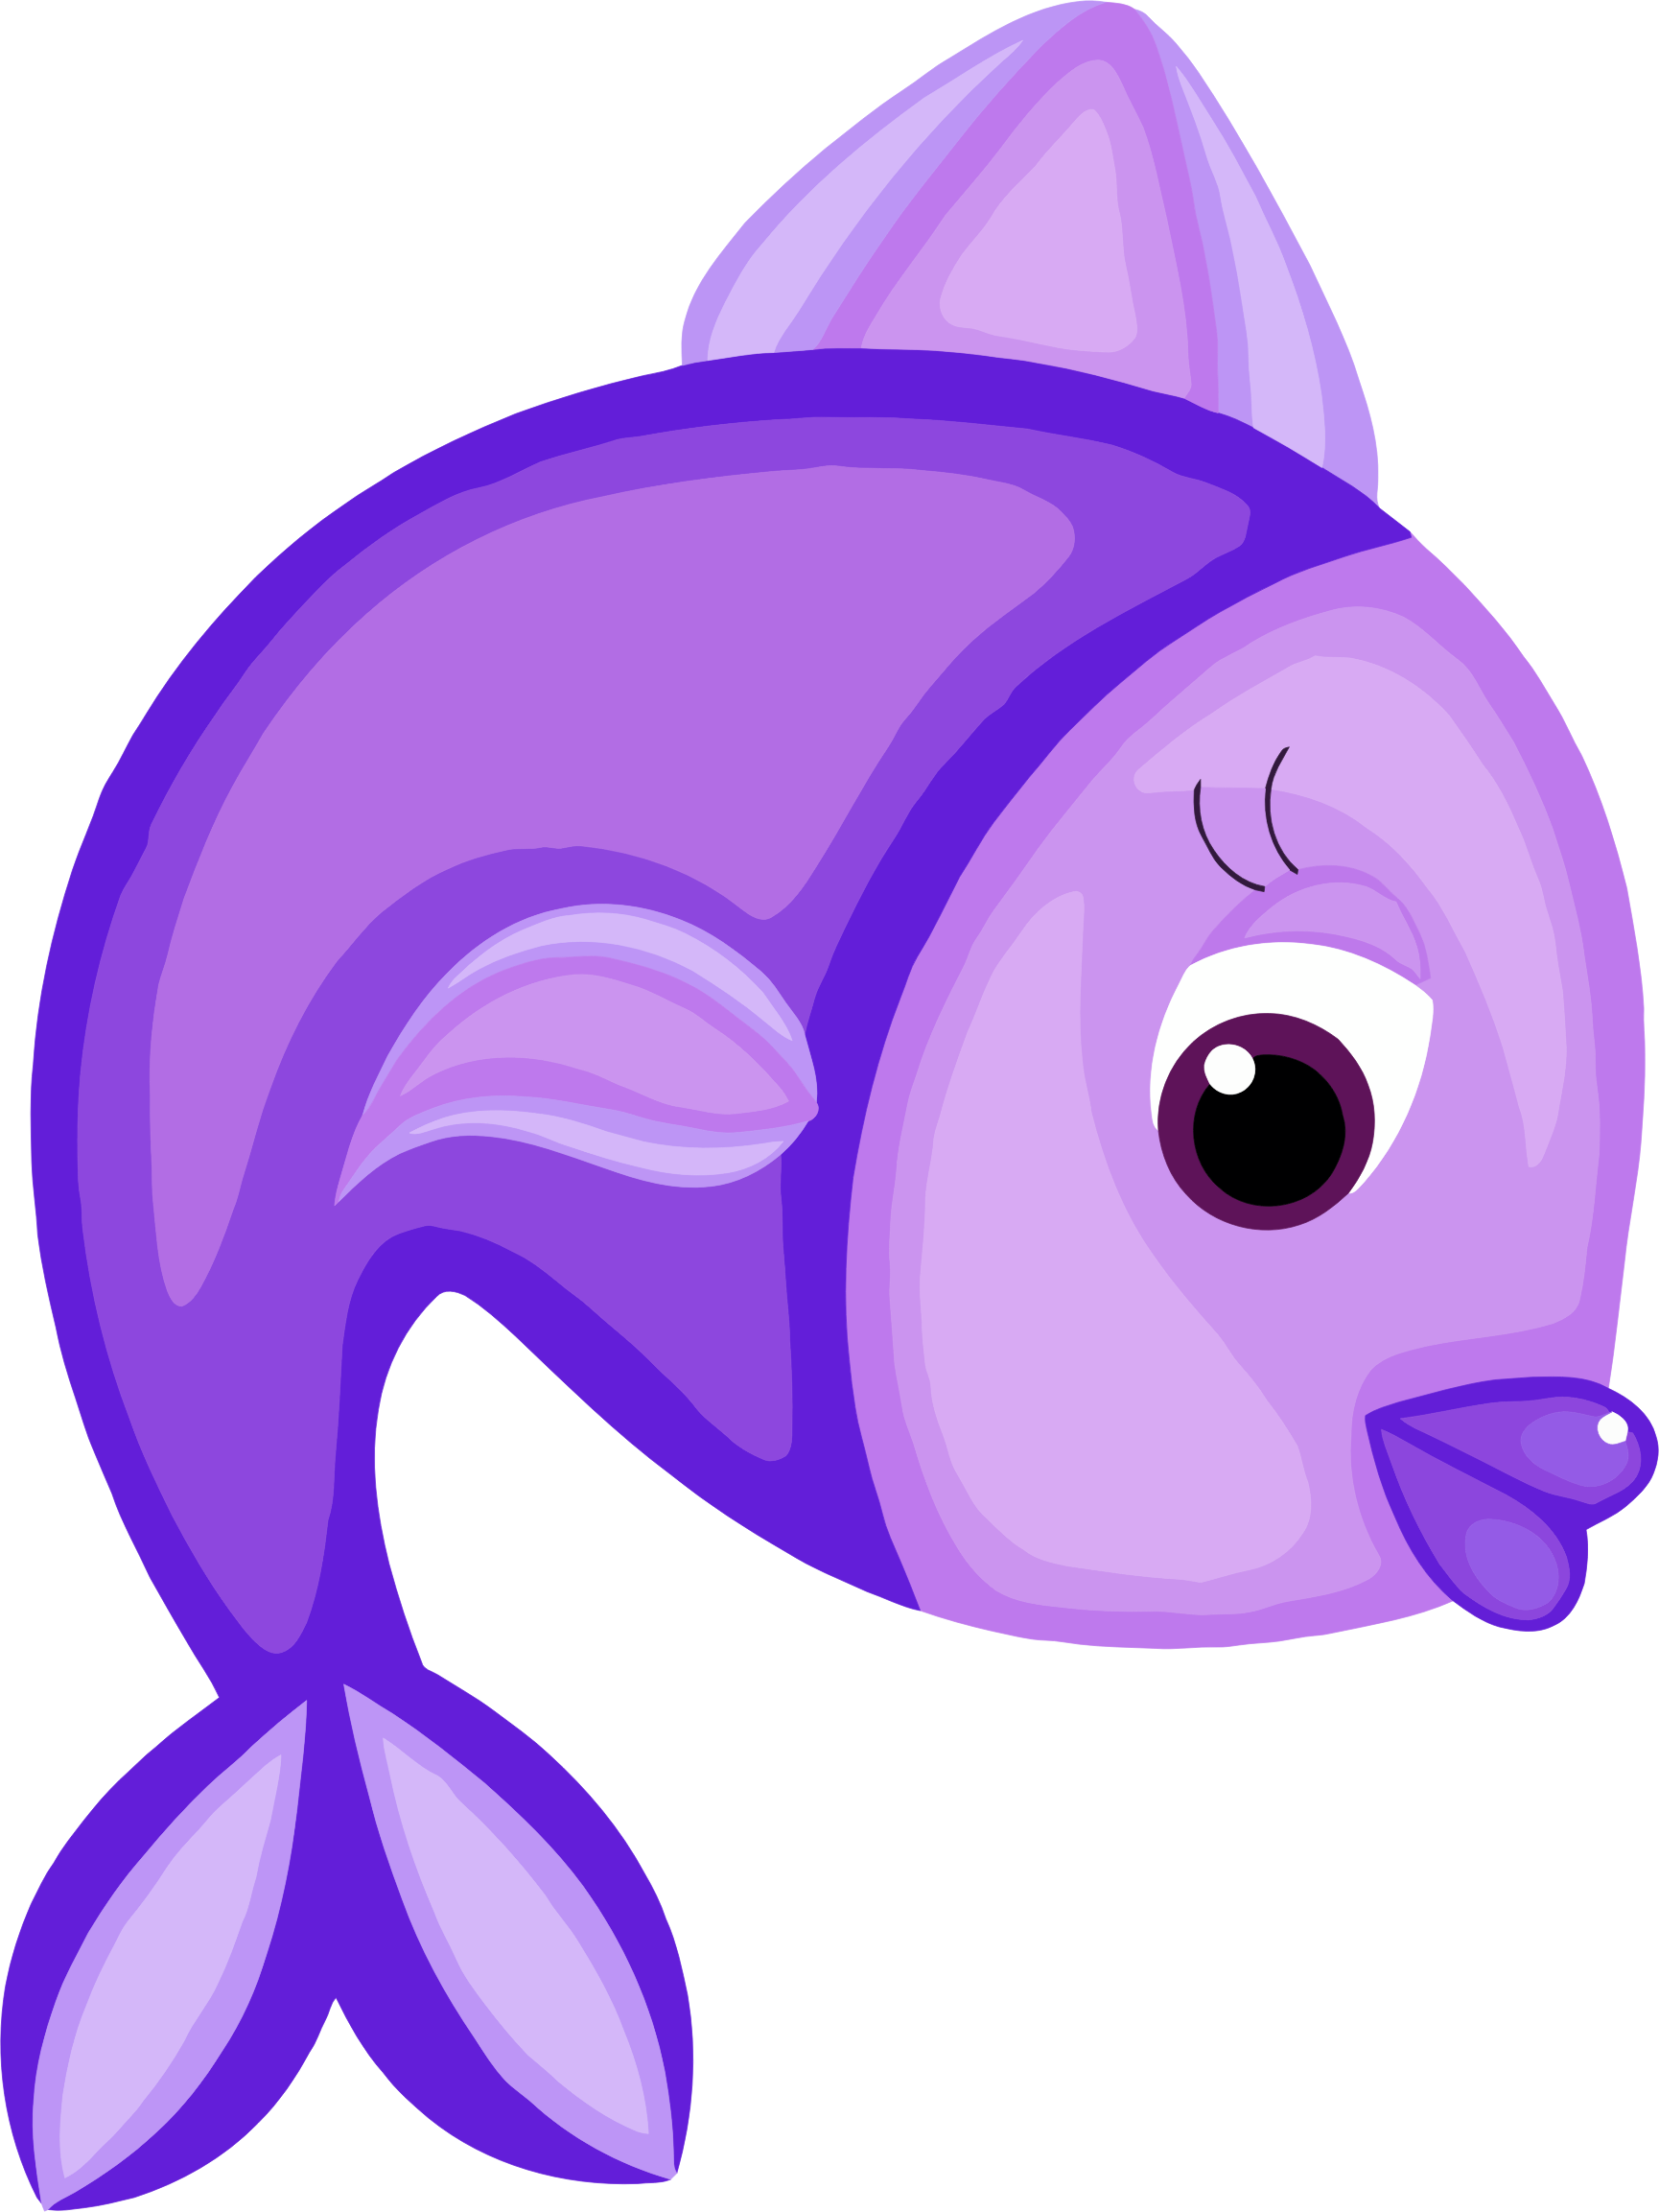 Blue fish clipart banner royalty free download Clipart - Blue Fish banner royalty free download